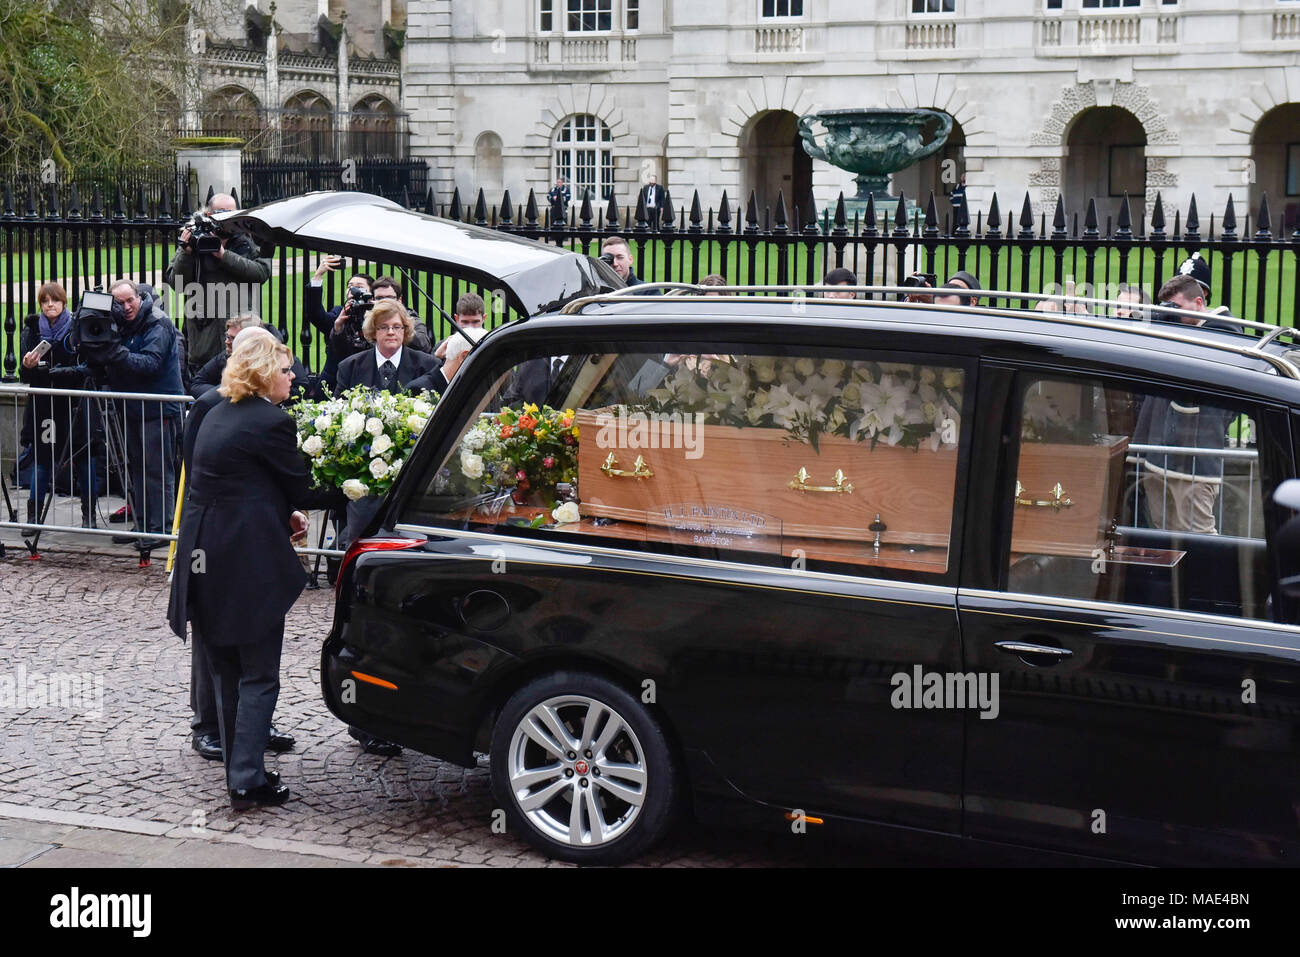 Cambridge, Britain. 31st Mar, 2018. The coffin of British physicist Stephen Hawking arrives at the Great St Mary's Church in Cambridge, Britain, on March 31, 2018. The funeral of Professor Stephen Hawking was held Saturday at a church near the Cambridge University college where he was a fellow for more than half a century. Credit: Stephen Chung/Xinhua/Alamy Live News Stock Photo